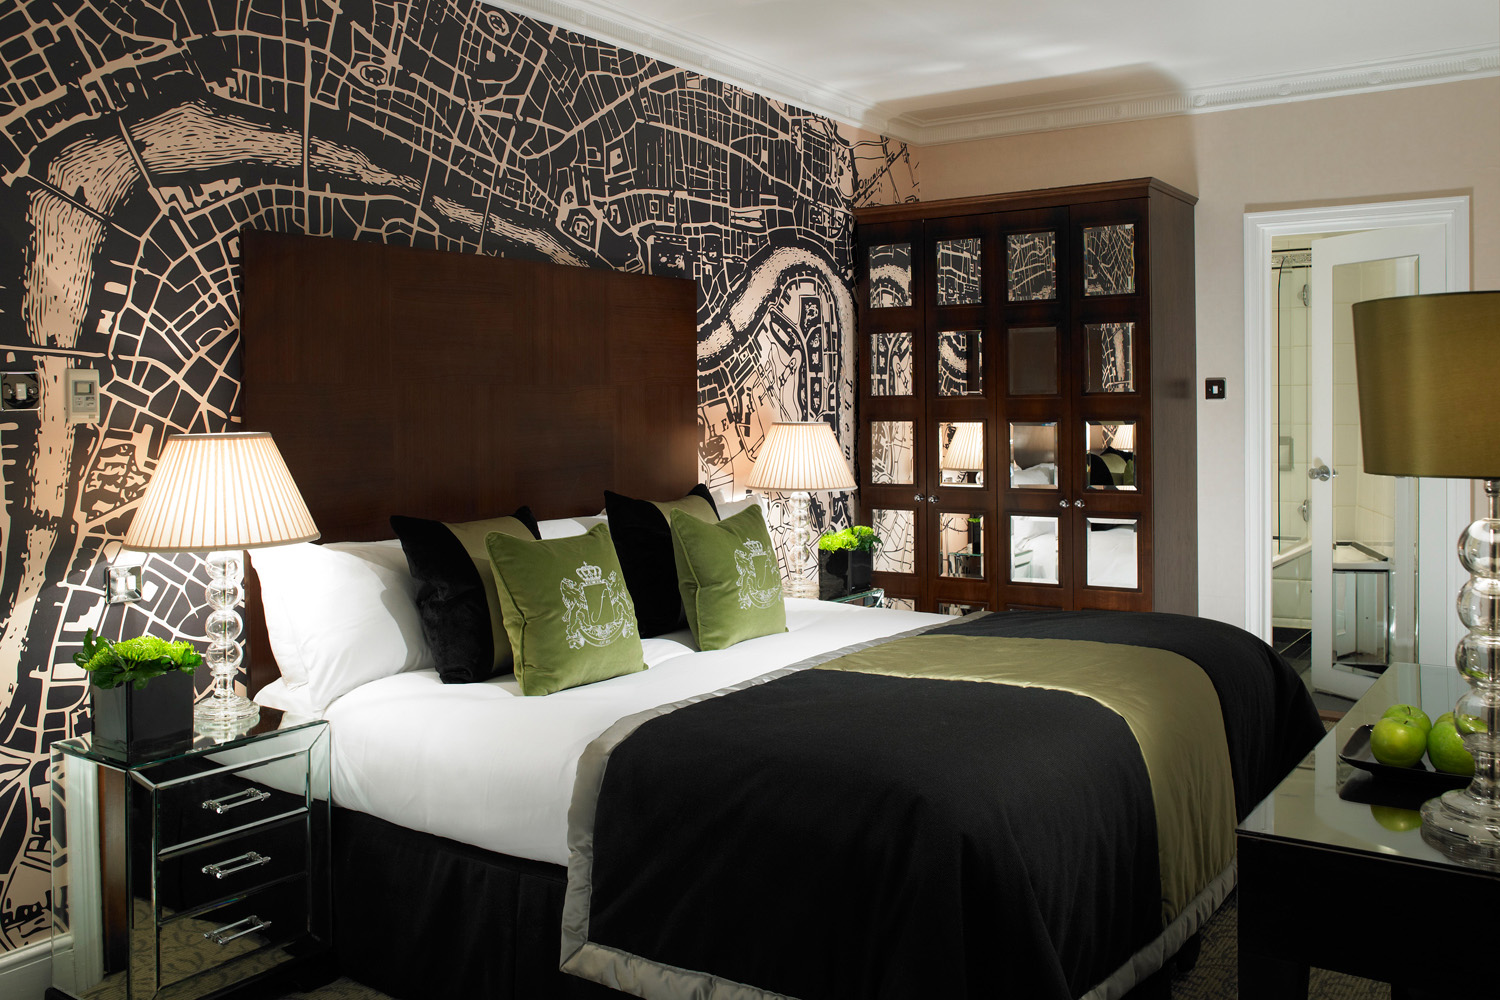 Design Box London - Interior Design - Flemings Hotel W1 - Bedroom